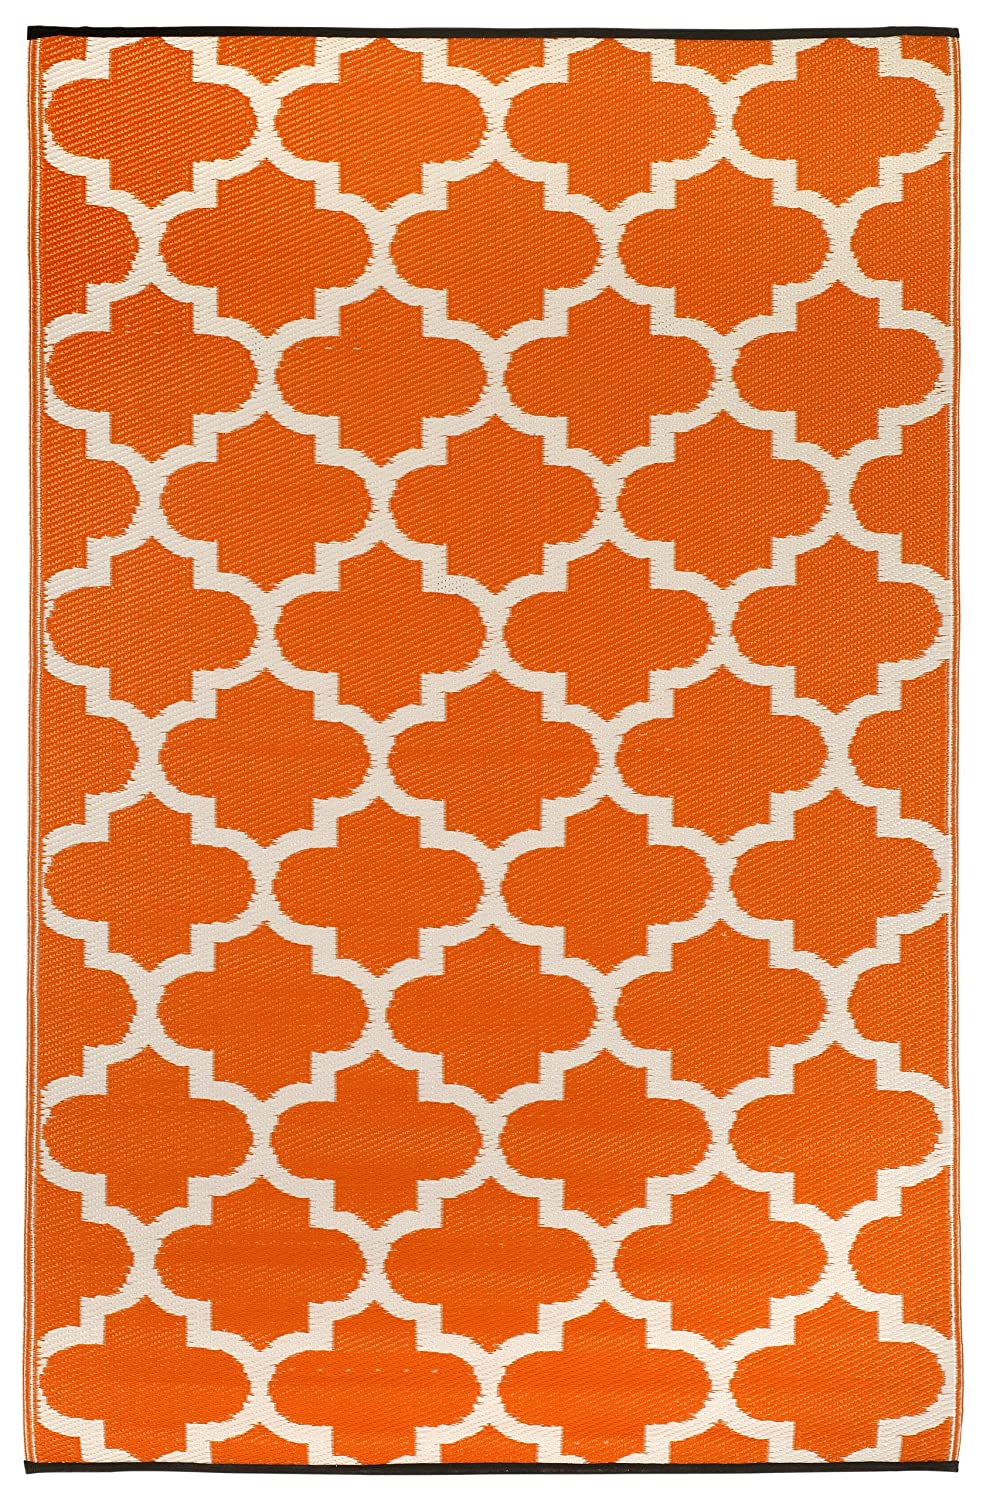 Fab Habitat Tangier-Carrot and White (3-Feetx5-Feet) Rug 22099179900